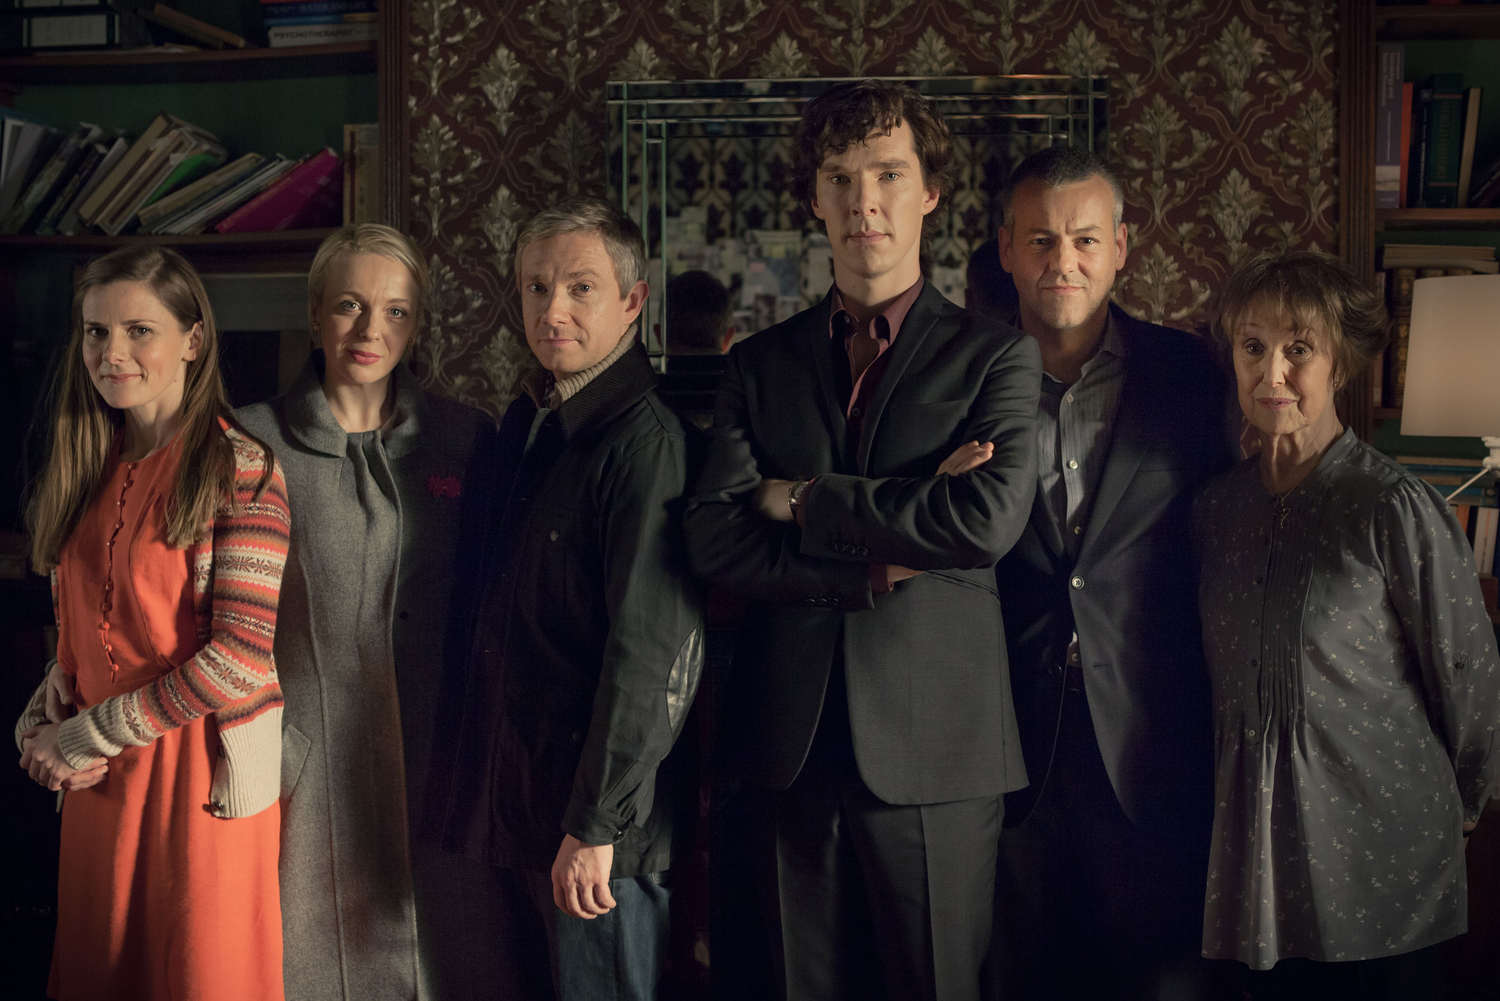 The BBC has released a new trailer for the highly anticipated Sherlock